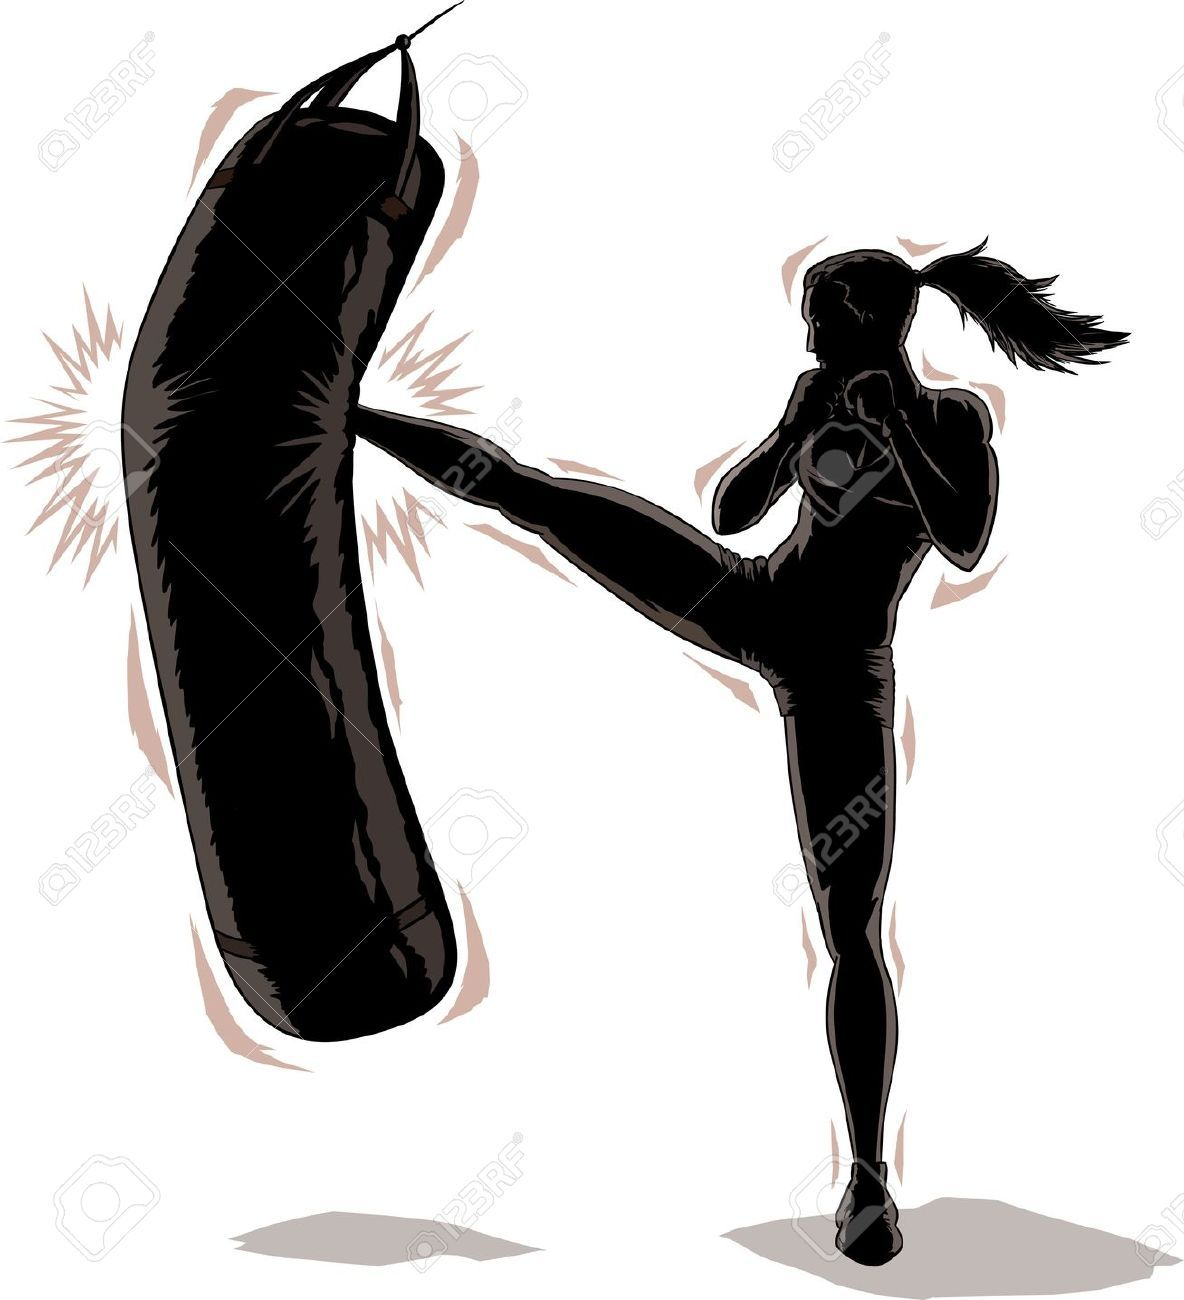 Kickboxing Stock Photos Images Royalty Free Kickboxing Images And Pictures Kickboxing Women Kickboxing Boxing Girl